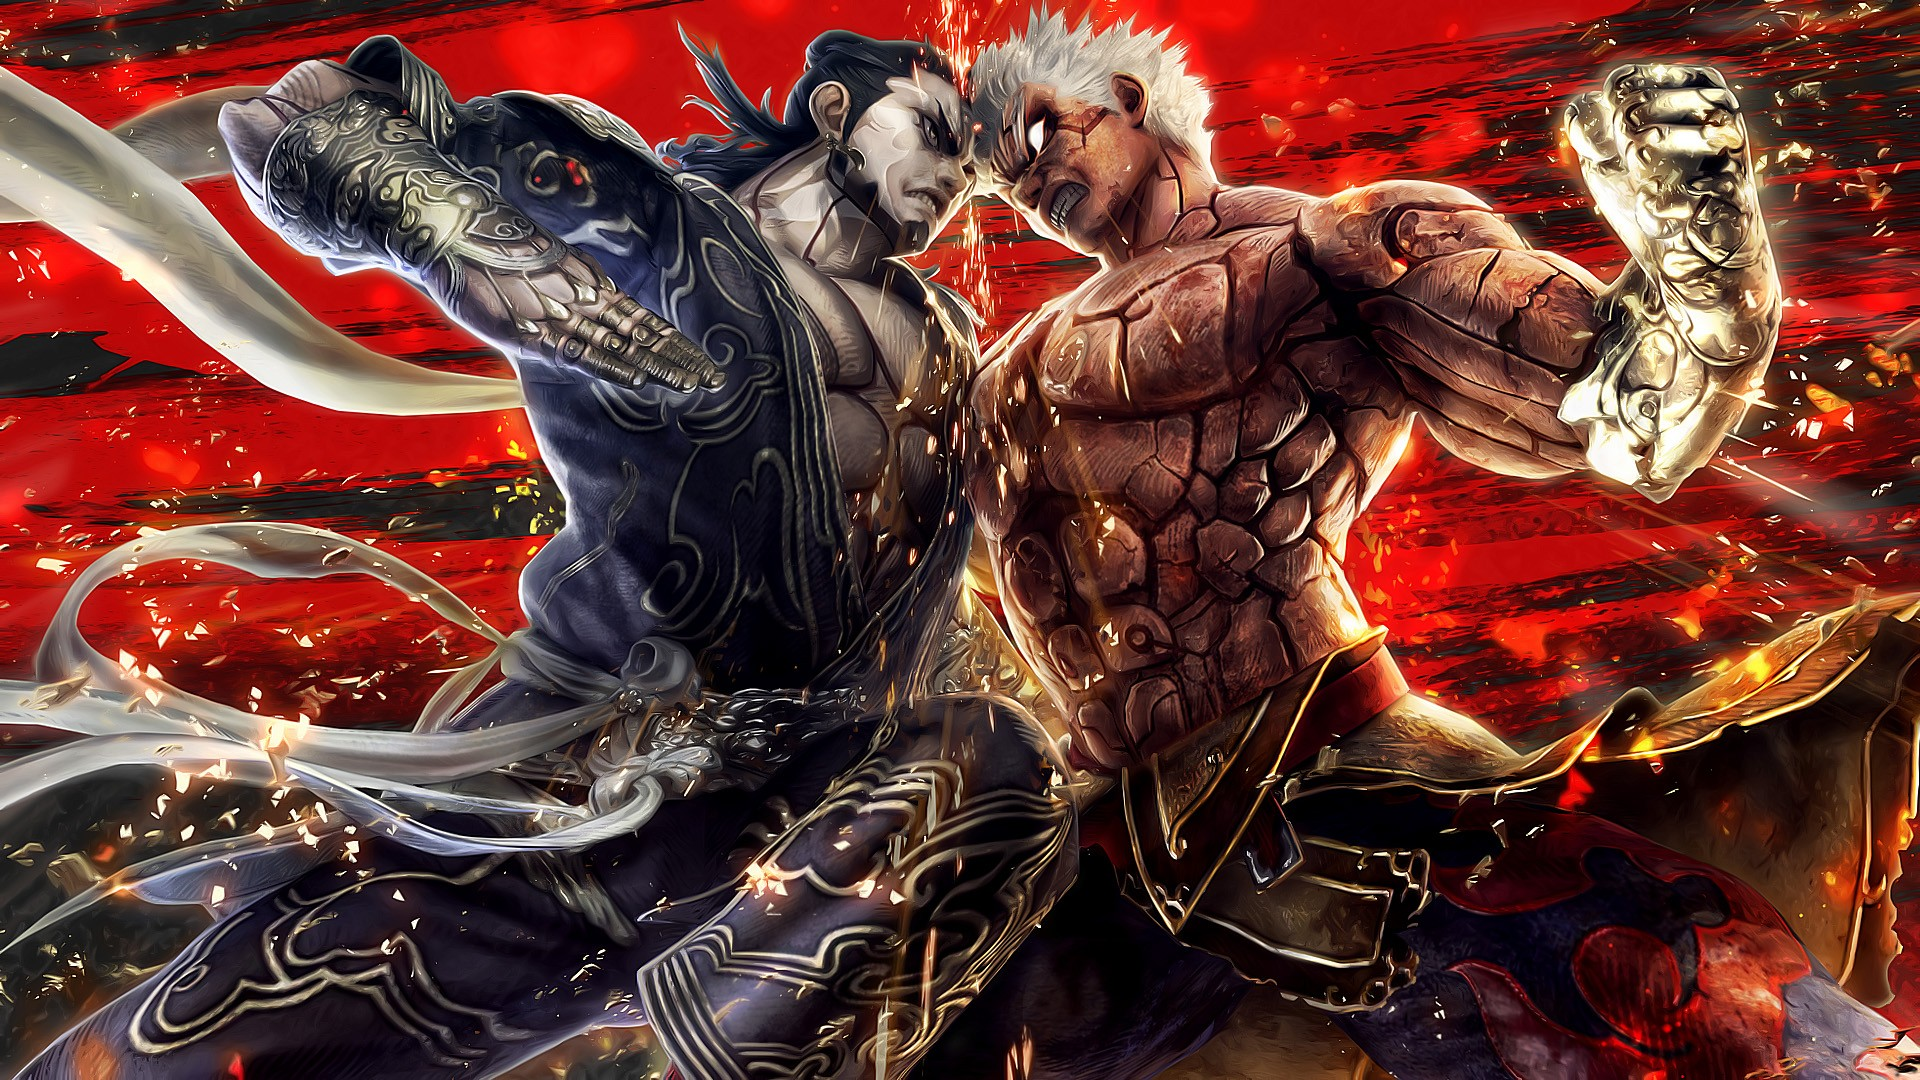 asura-wrath-anger-artwork-fighting-video-games-desktop-1920x1080-hd-1920×-wallpaper-wp3802597